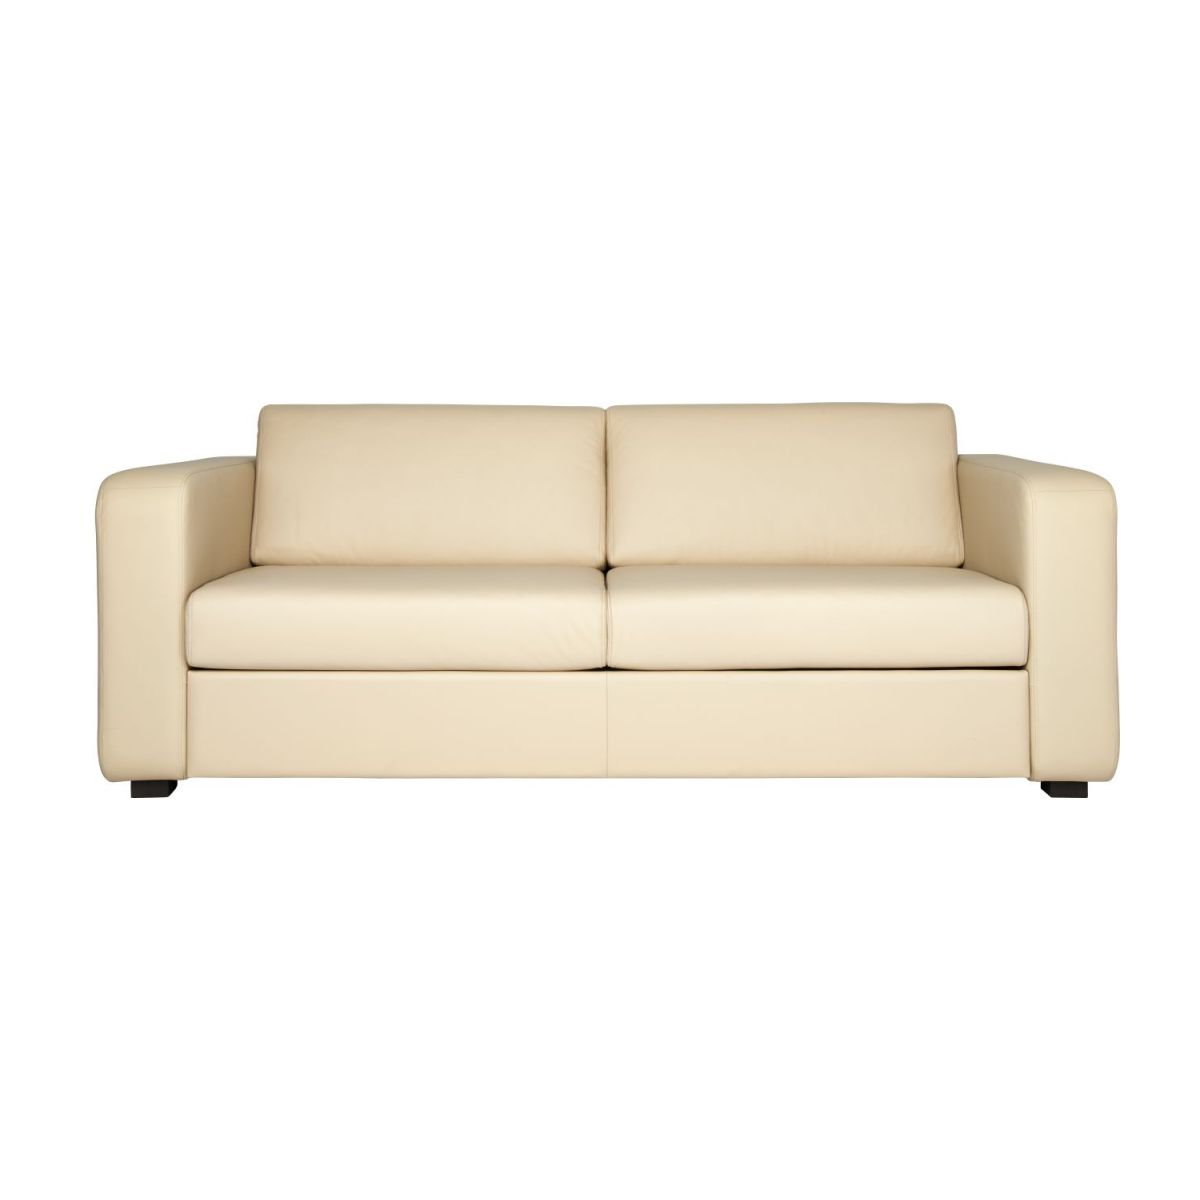 3-person leather sofa n°2